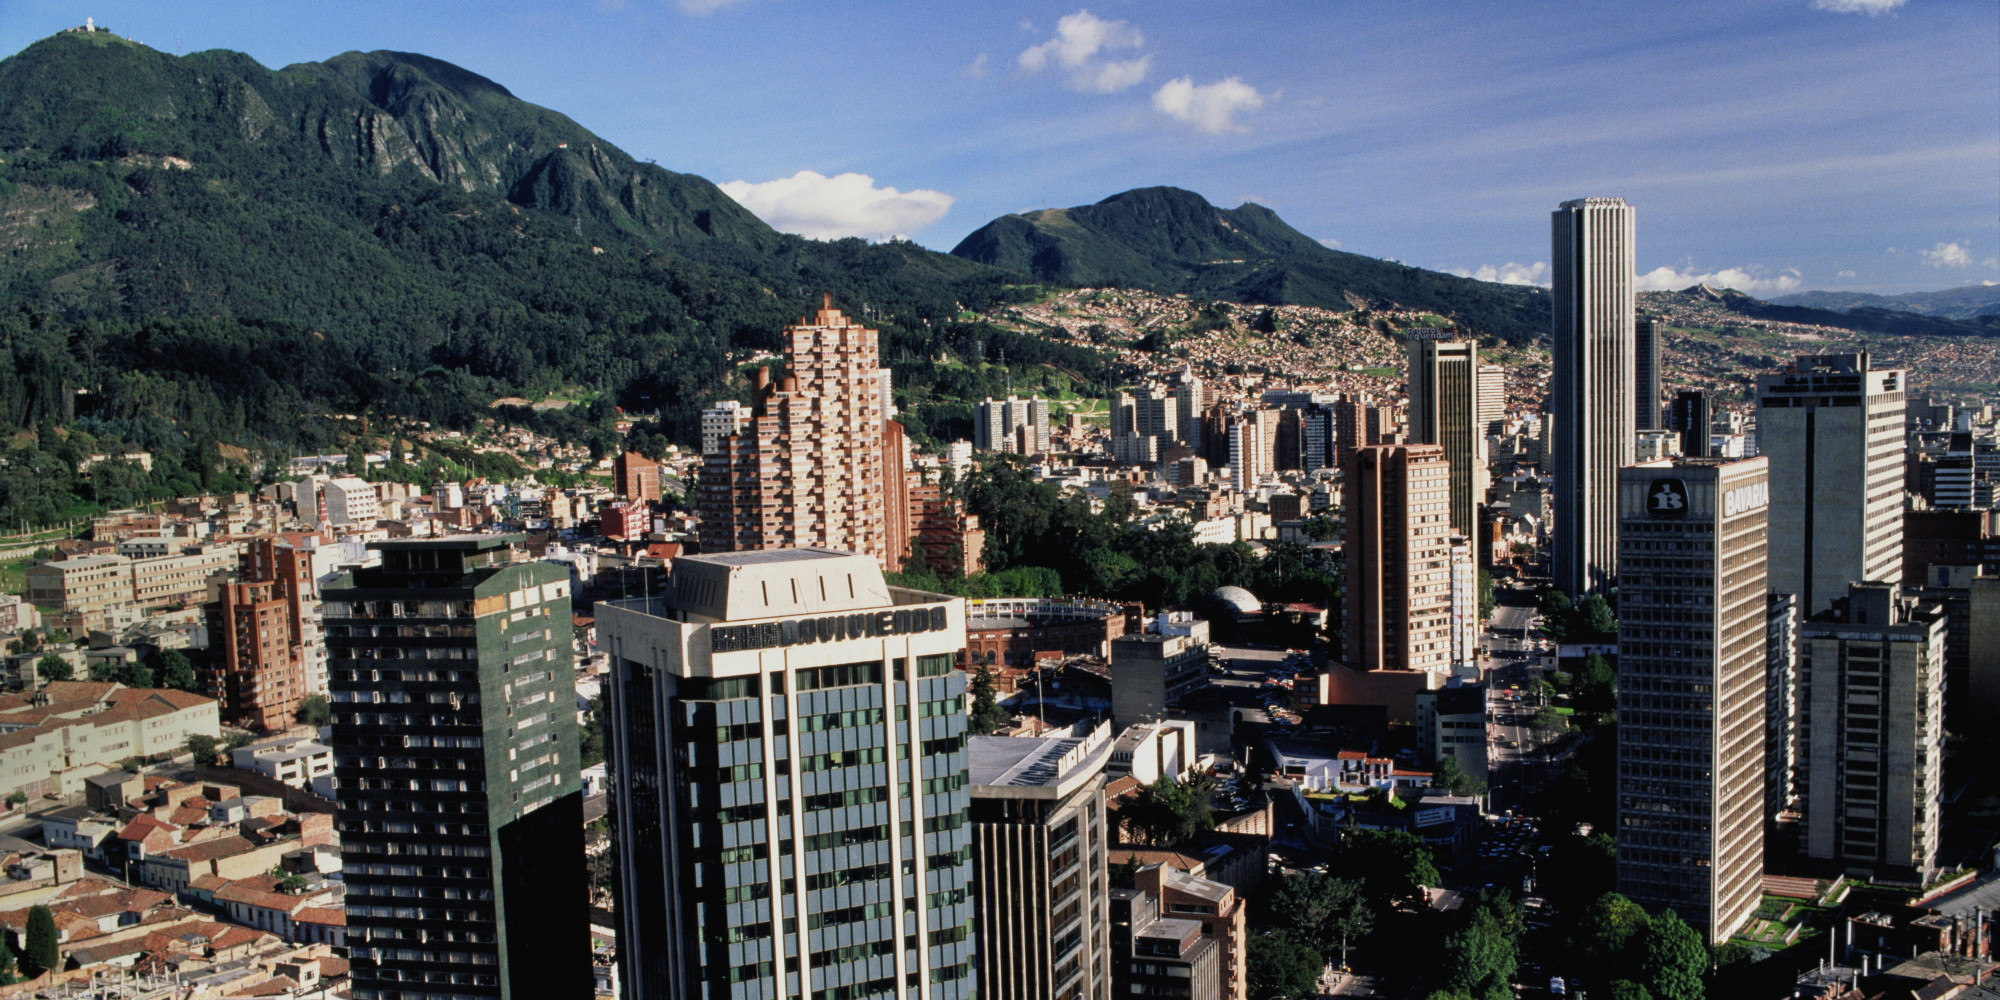 Bogota Colombia  city photos gallery : Bogotá, Colombia Is Transforming Into South America's Tech Hub